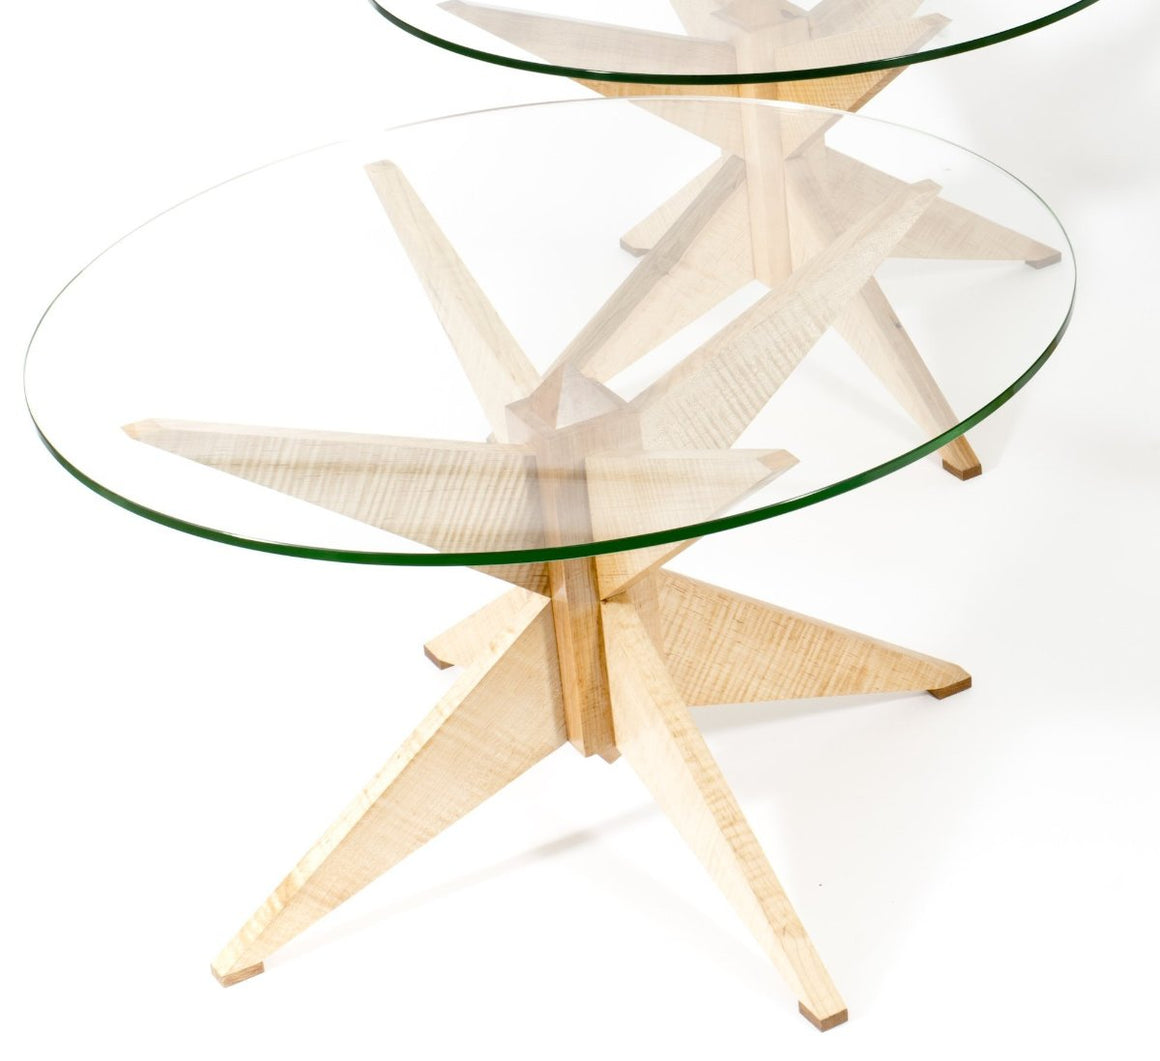 OctaTeaStar Table by Paul Barclay deTolly